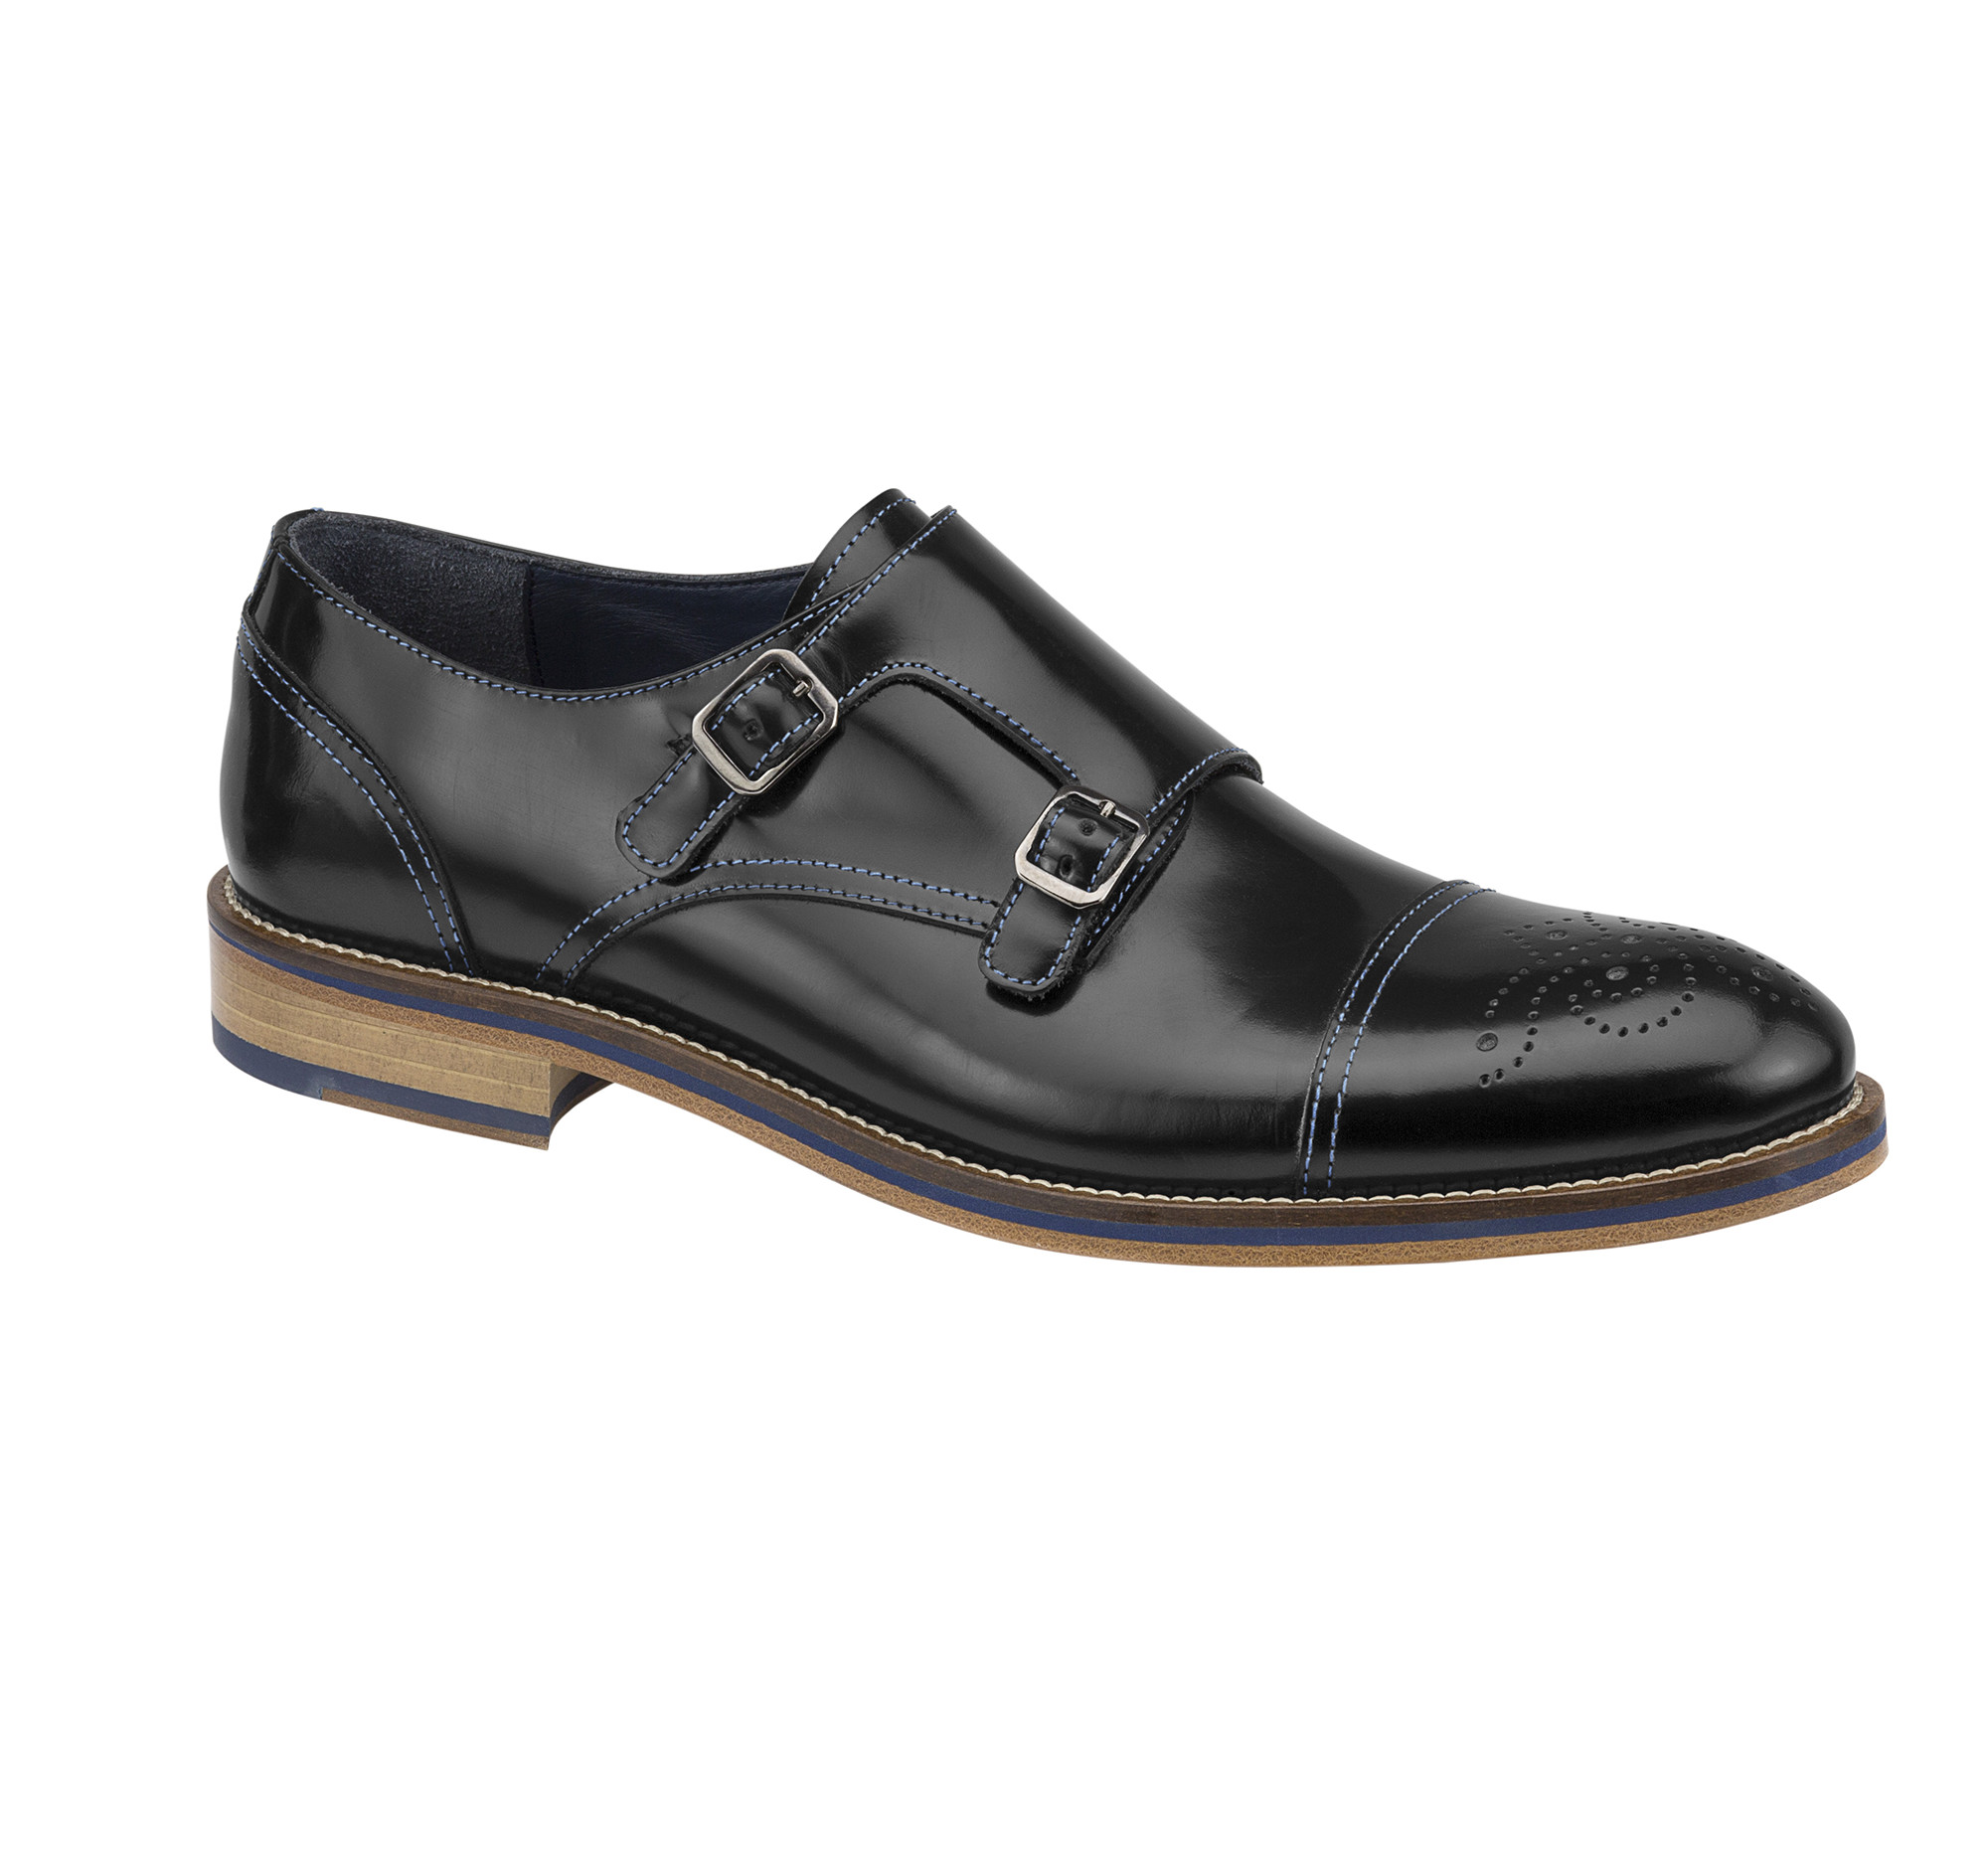 Johnston And Murphy Dress Shoes Review